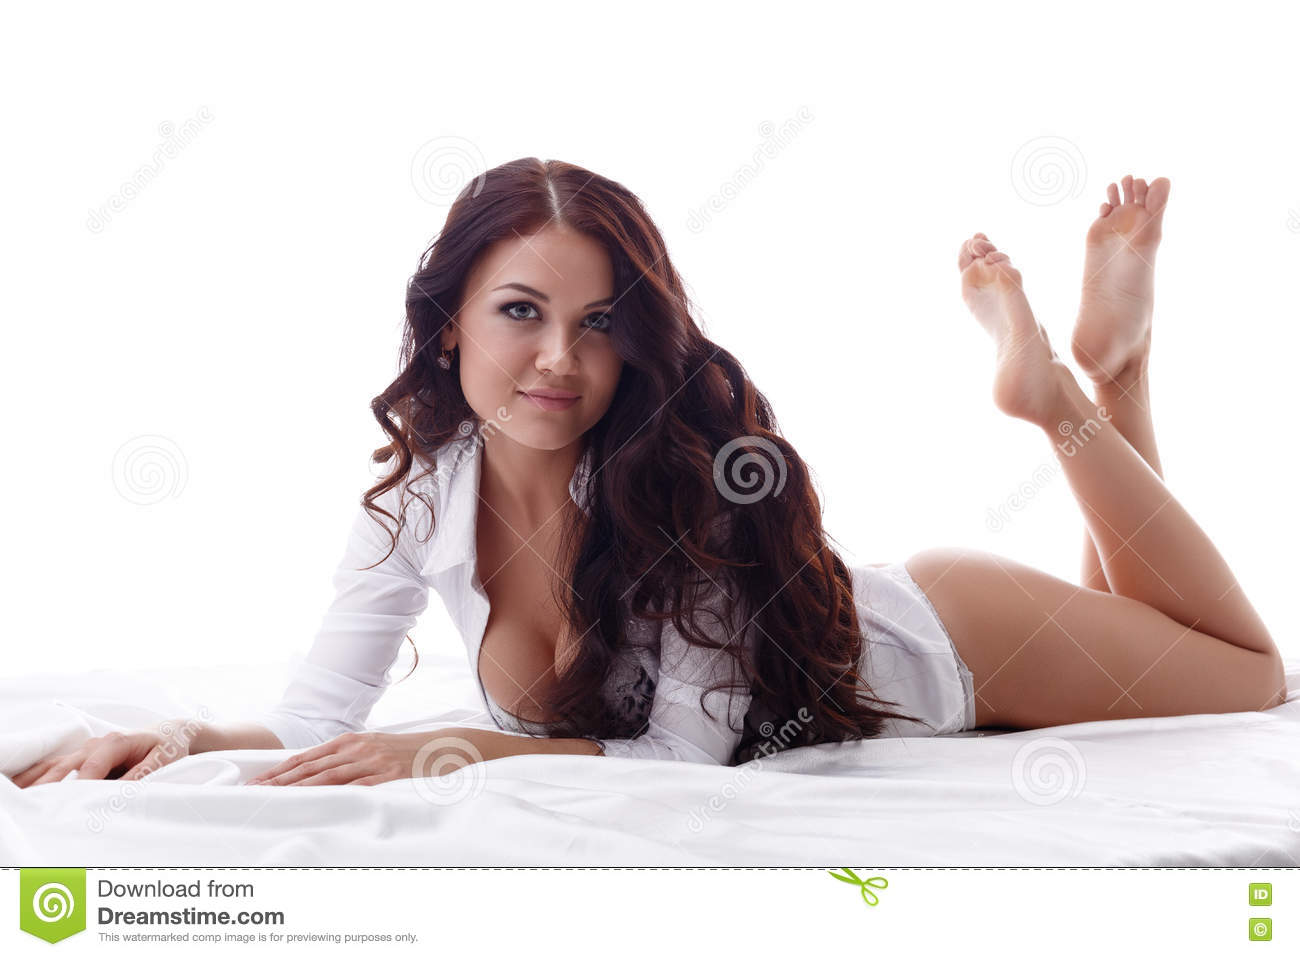 Sexy brunette getting ready for bed